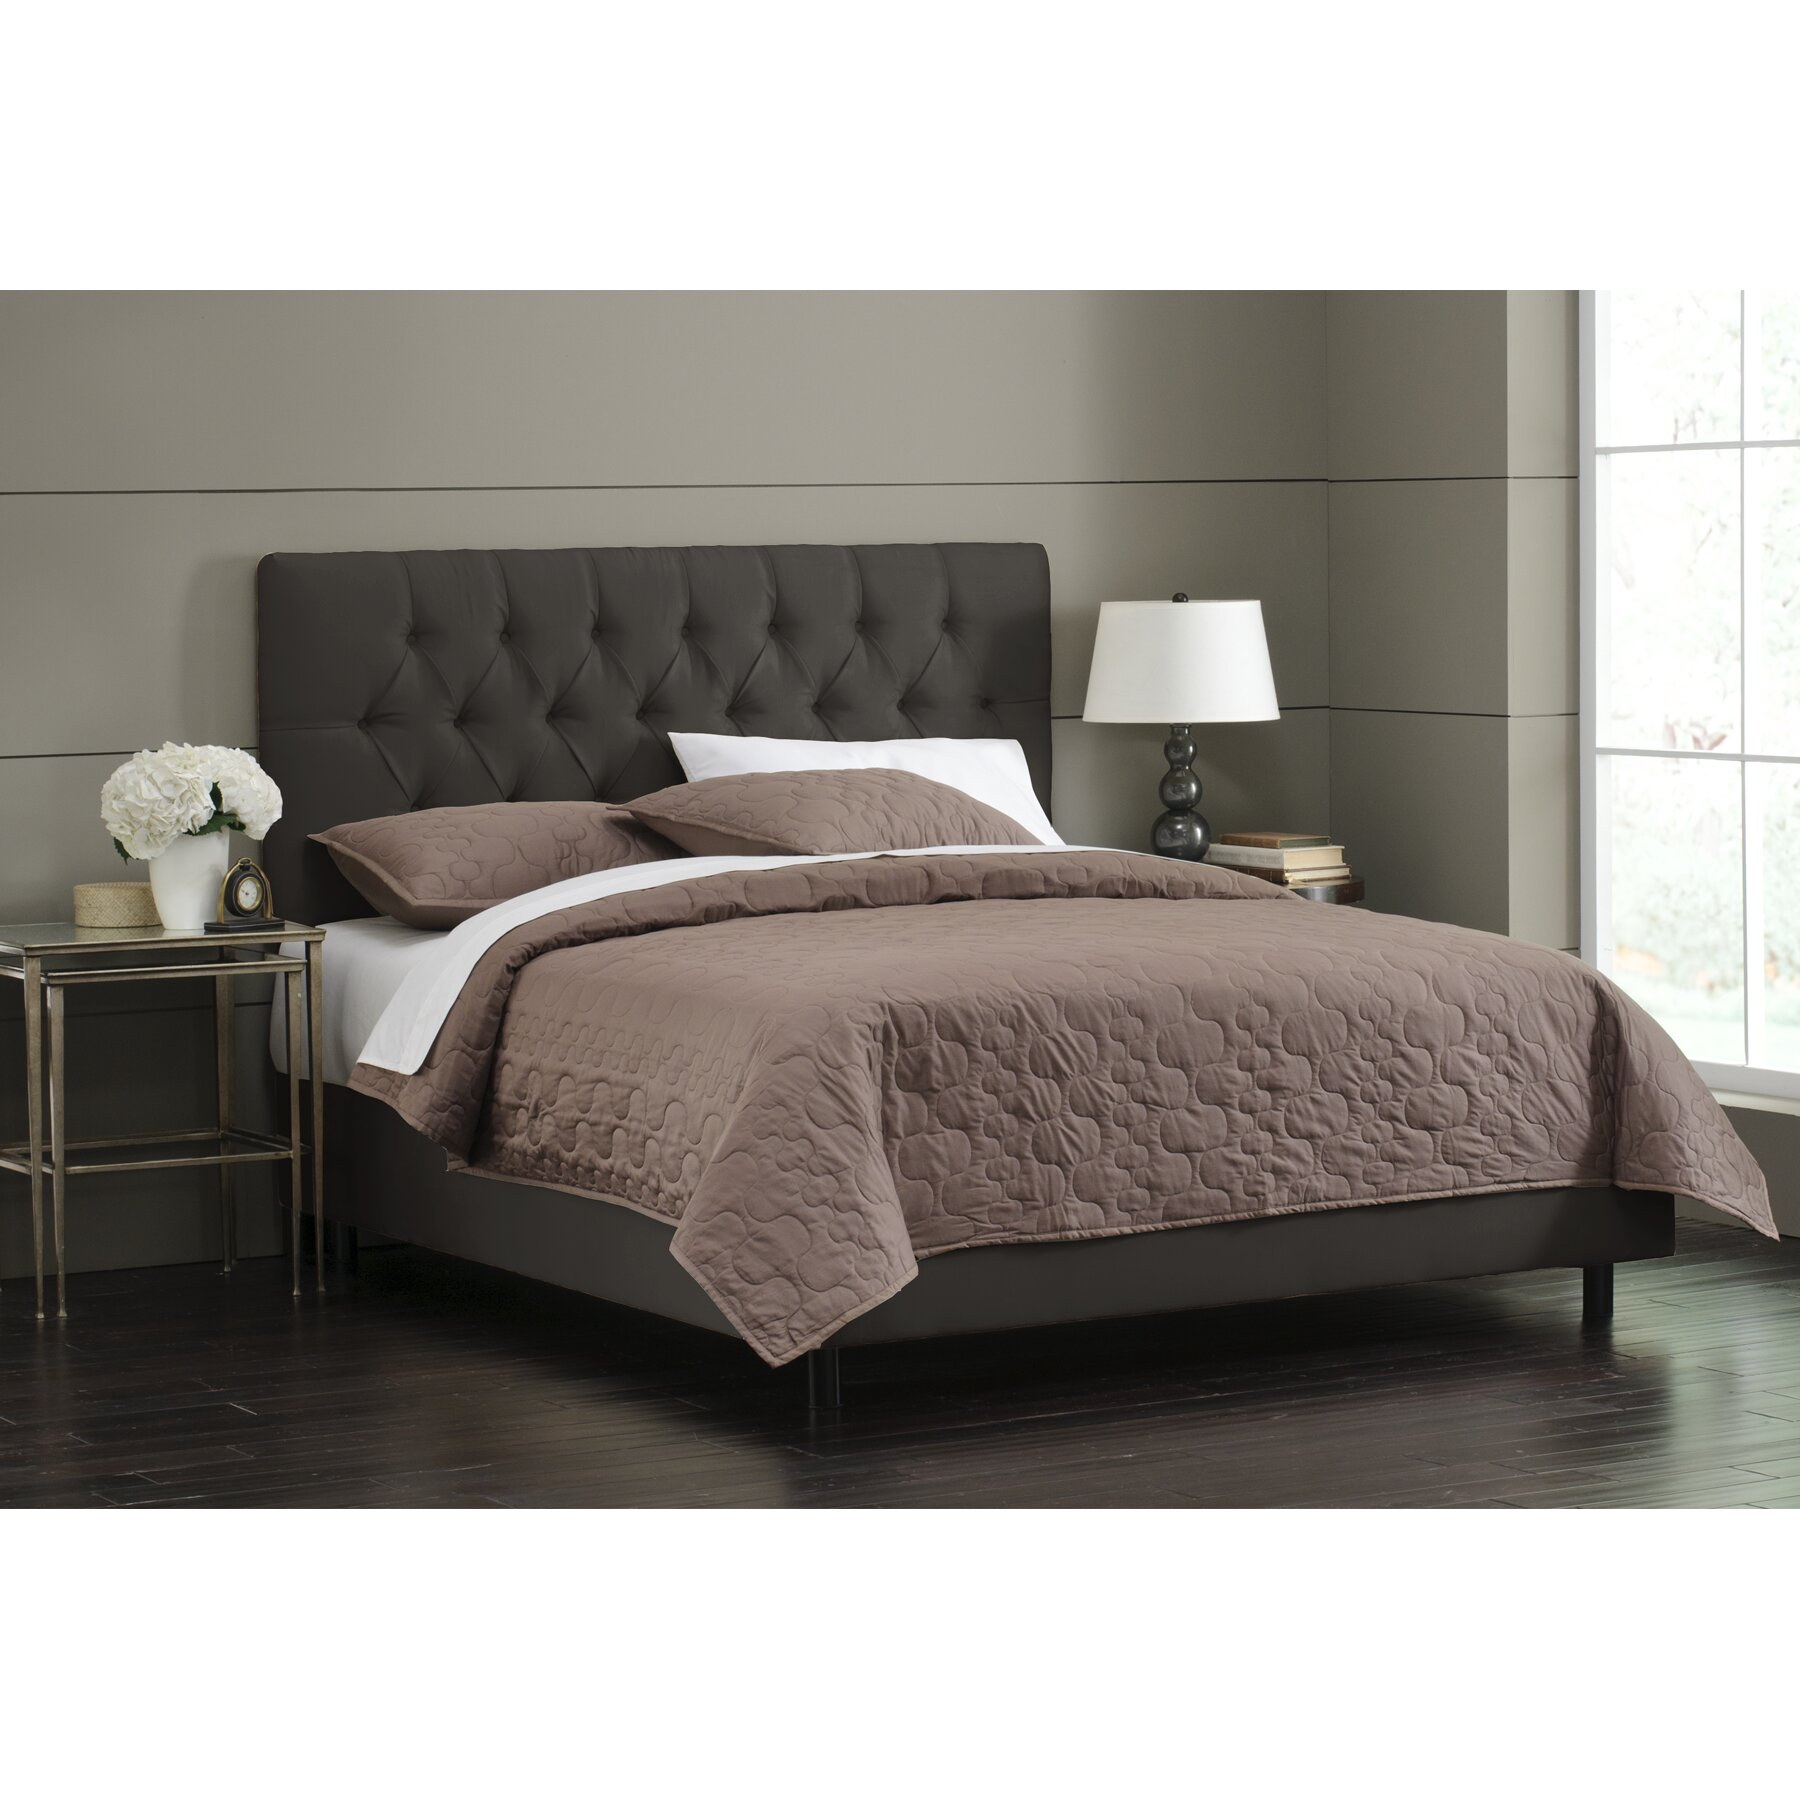 Skyline furniture upholstered panel bed reviews wayfair for Bedroom set and mattress